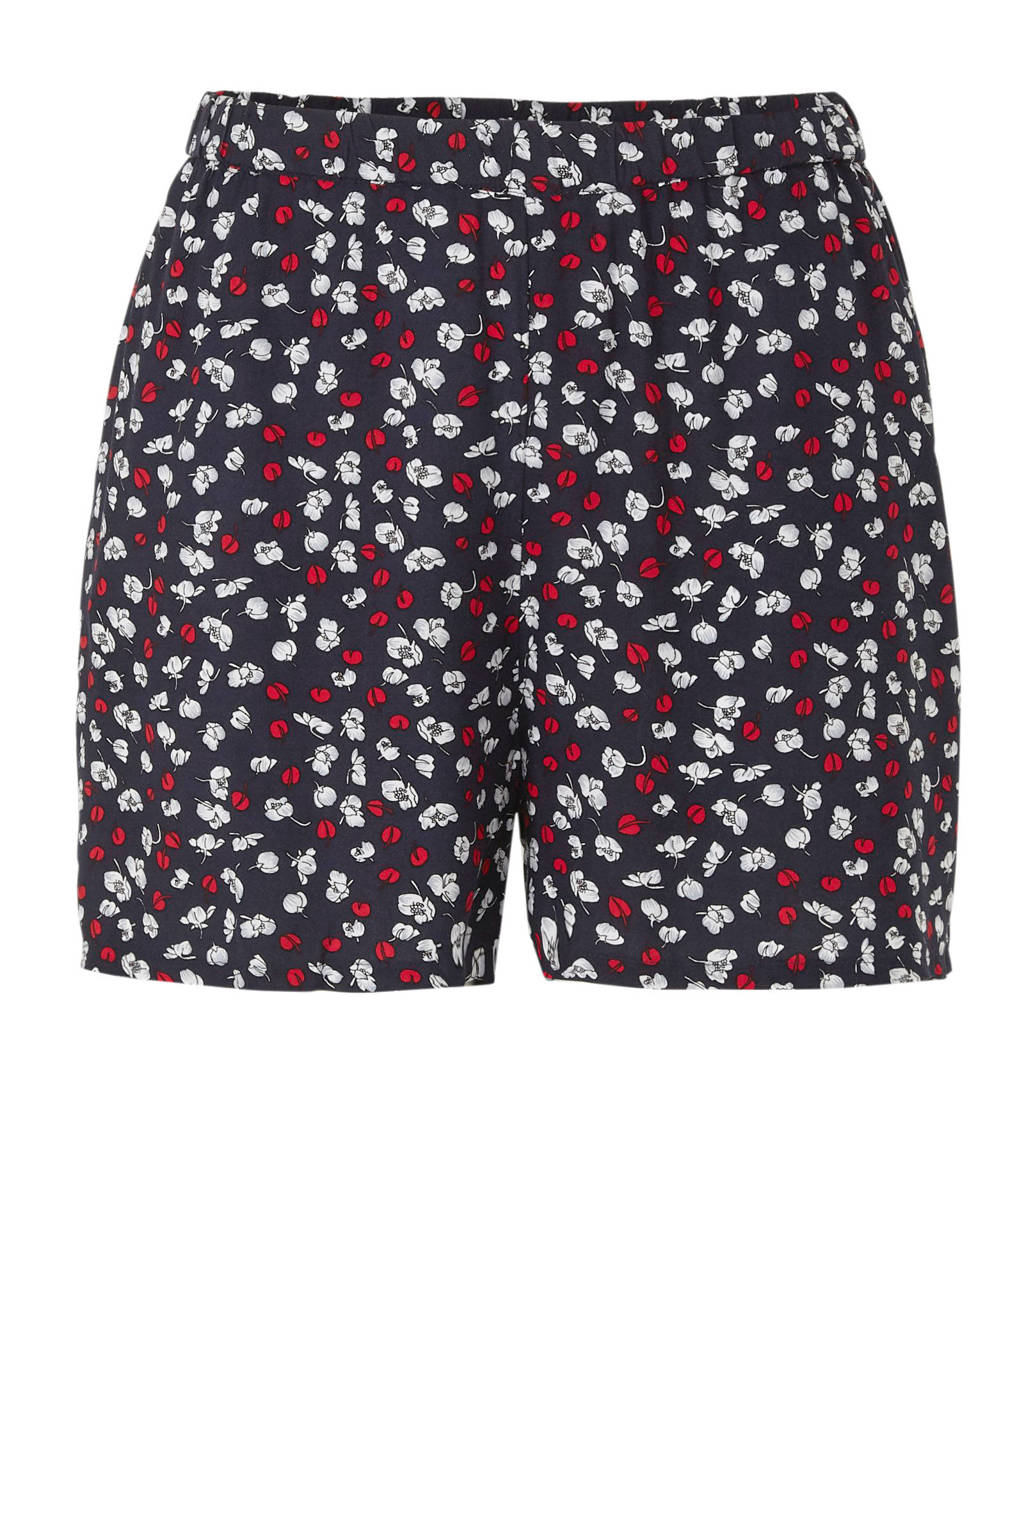 ONLY carmakoma loose fit short met all over print donkerblauw/rood/wit, Donkerblauw/rood/wit